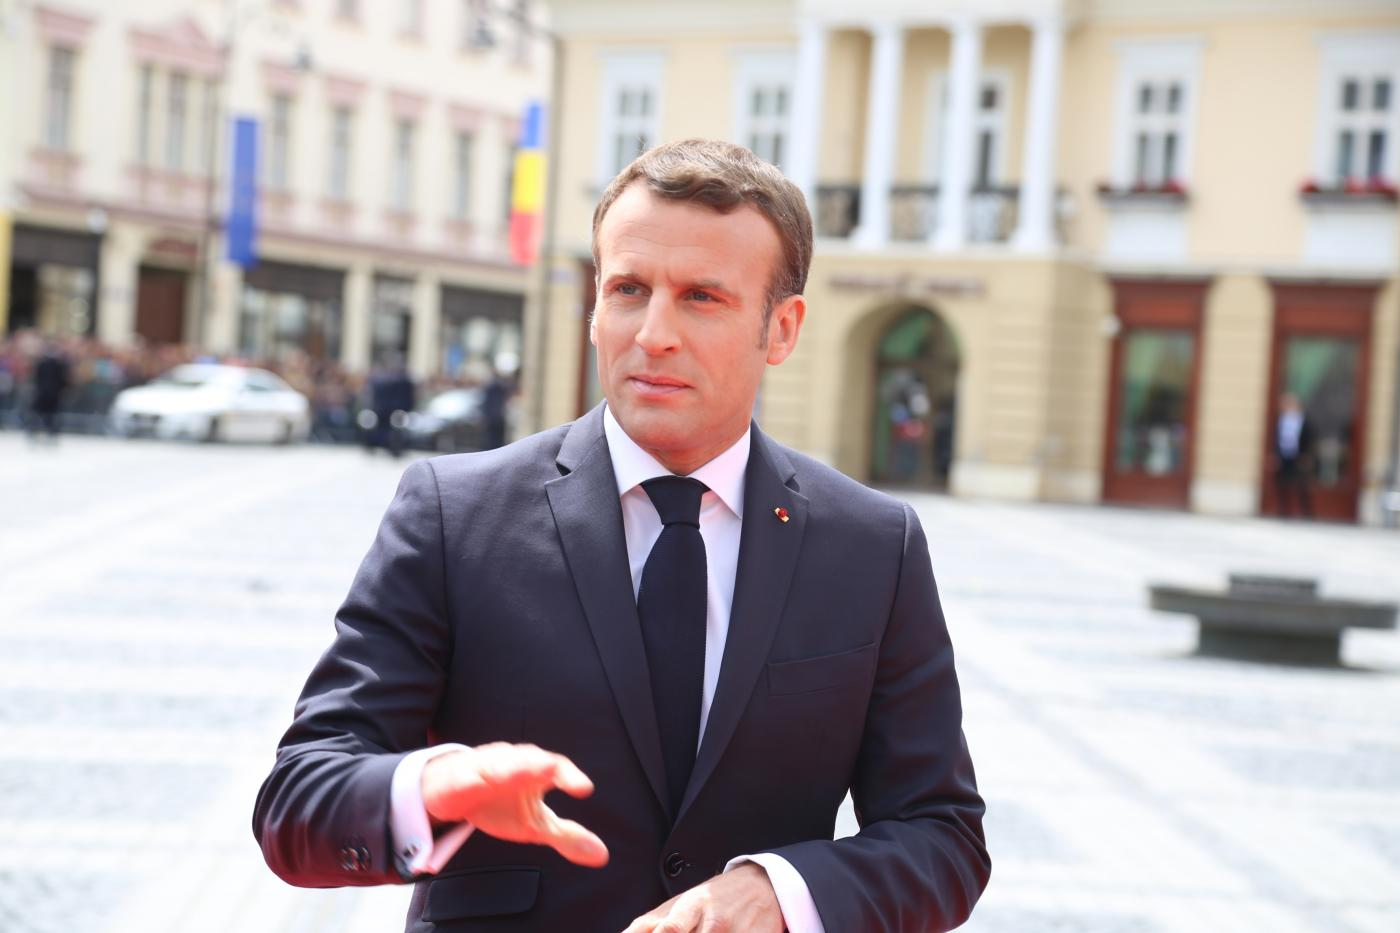 "SIBIU, May 9, 2019 (Xinhua) -- French President Emmanuel Macron arrives in the Grand Square in front of the Sibiu City Hall to attend the European Union (EU) informal summit in Sibiu, Romania, May 9, 2019. The leaders of the EU member states on Thursday agreed on defending ""one Europe"" and upholding the rules-based international order in their ""10 commitments"" declaration, made at an informal summit in Sibiu. (Xinhua/Chen Jin/IANS) by ."